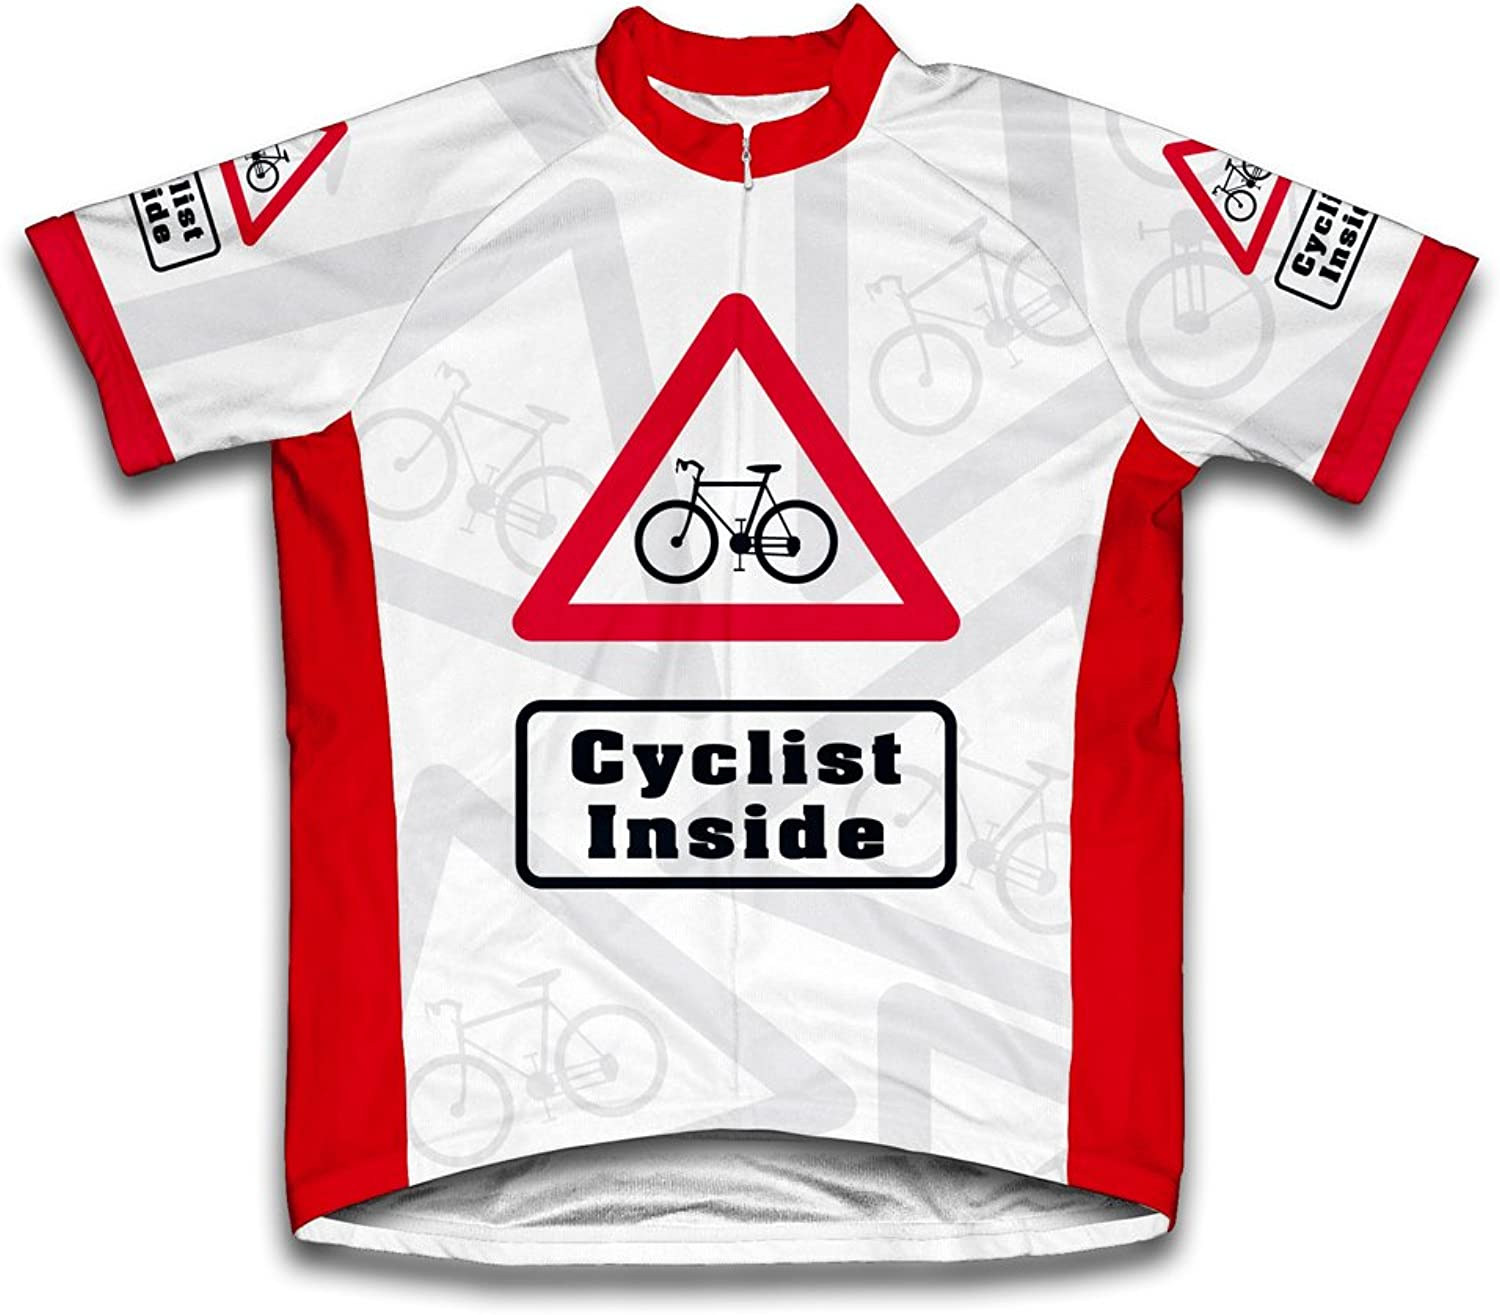 Cyclist Inside Short Sleeve Cycling Jersey for Men